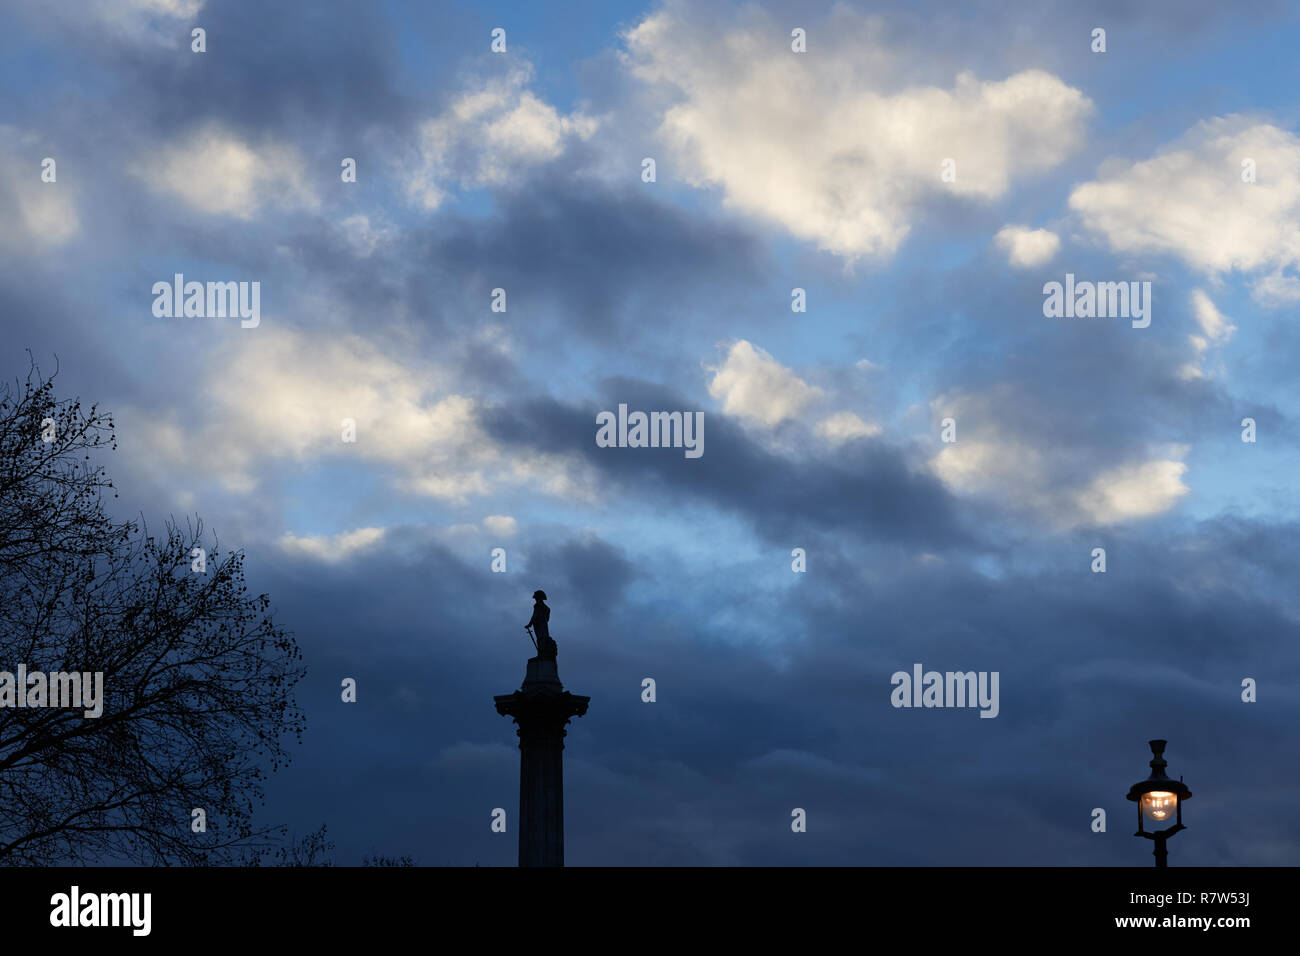 Nelson's column in Trafalgar Square, London, England, at nightime. - Stock Image